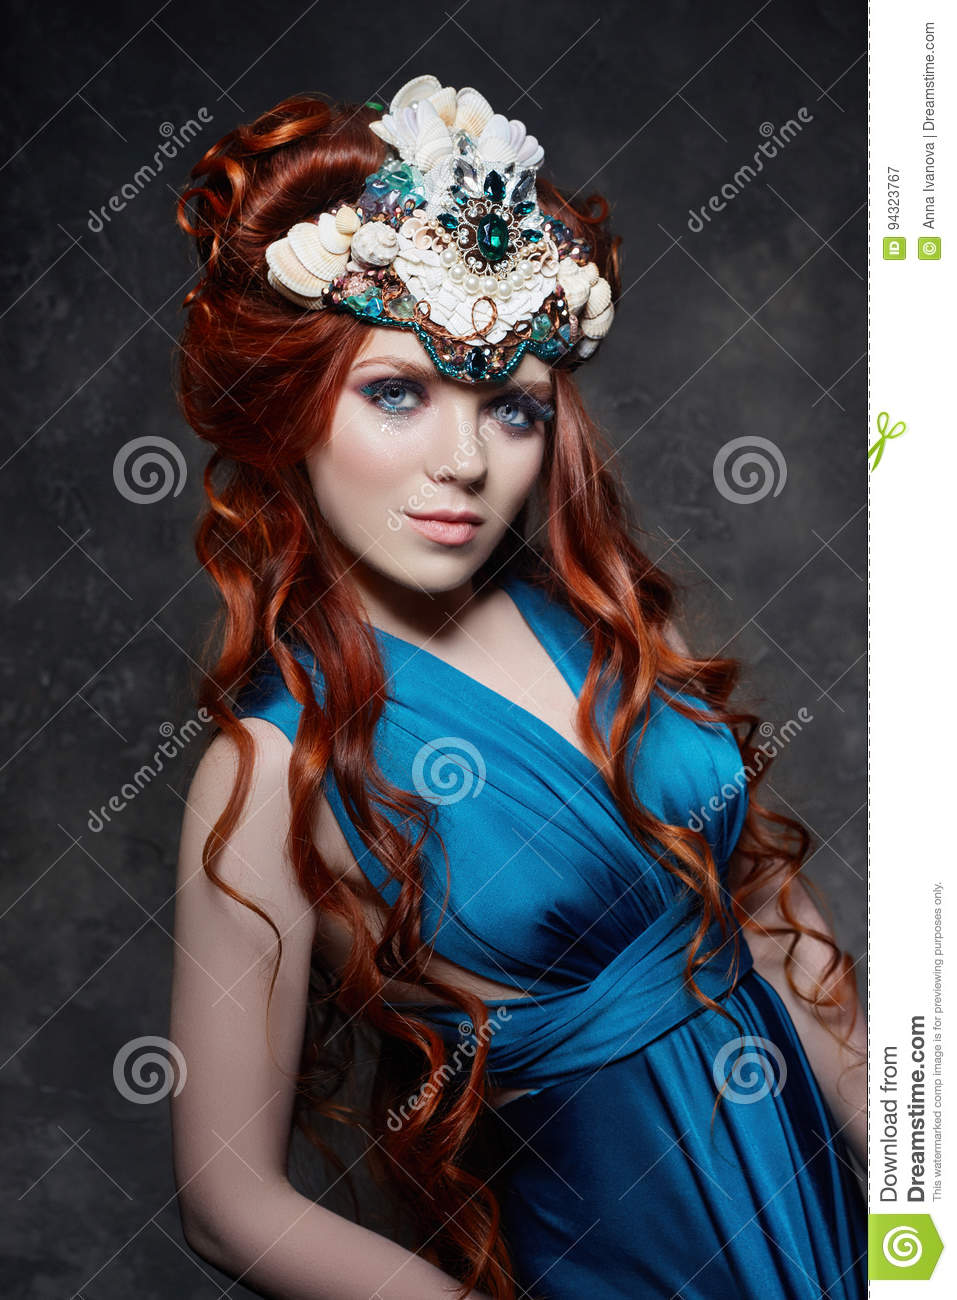 17a49c545eb Redhead girl fabulous look, blue long dress, bright makeup and big eyelashes.  Mysterious fairy woman with red hair. Big eyes and colored shadows, ...